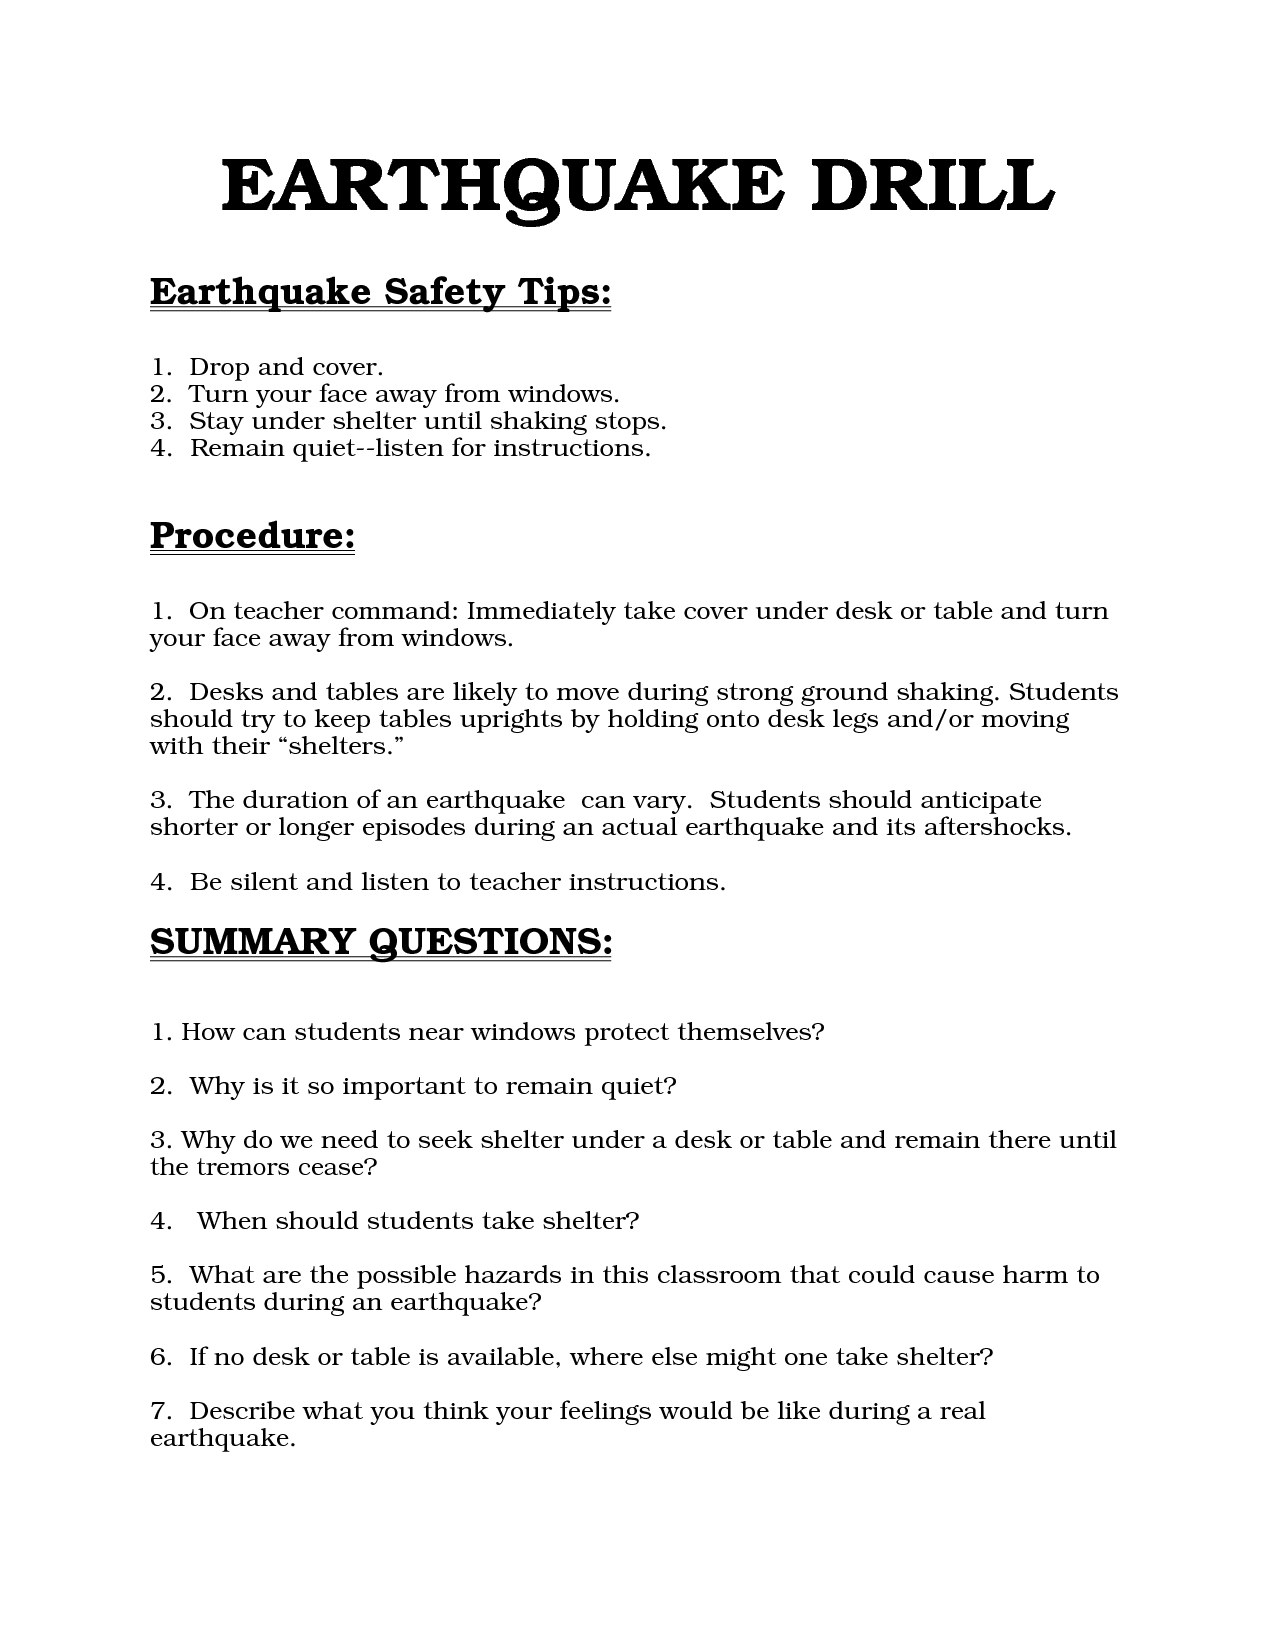 Earthquake Drill Procedures